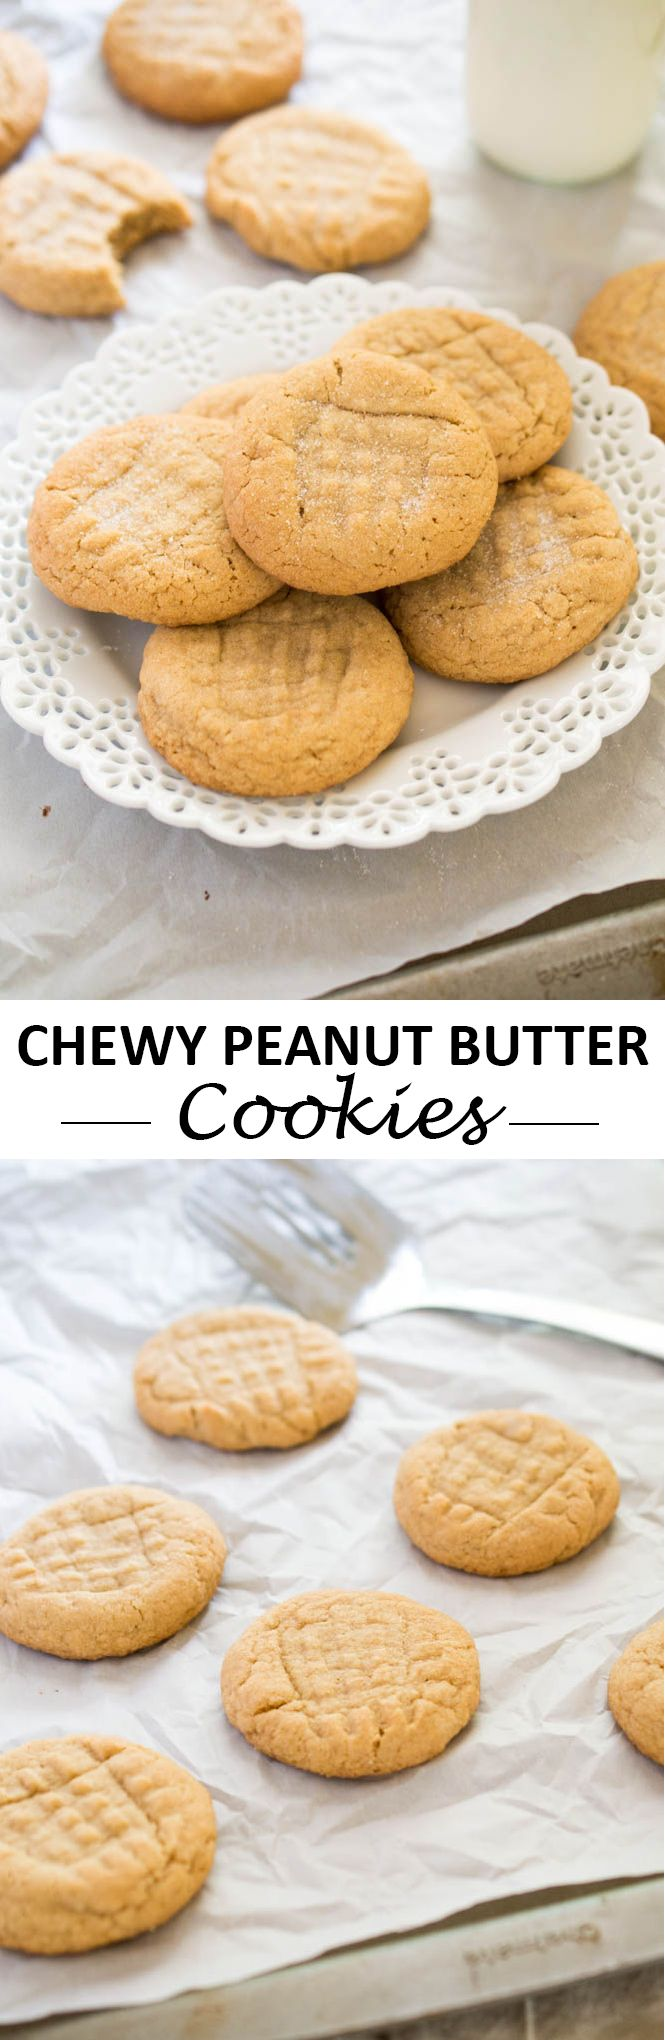 Quick and Easy Chewy Peanut Butter Cookies. These cookies are super thick, melt in your mouth and can be made in 20 minutes or less!